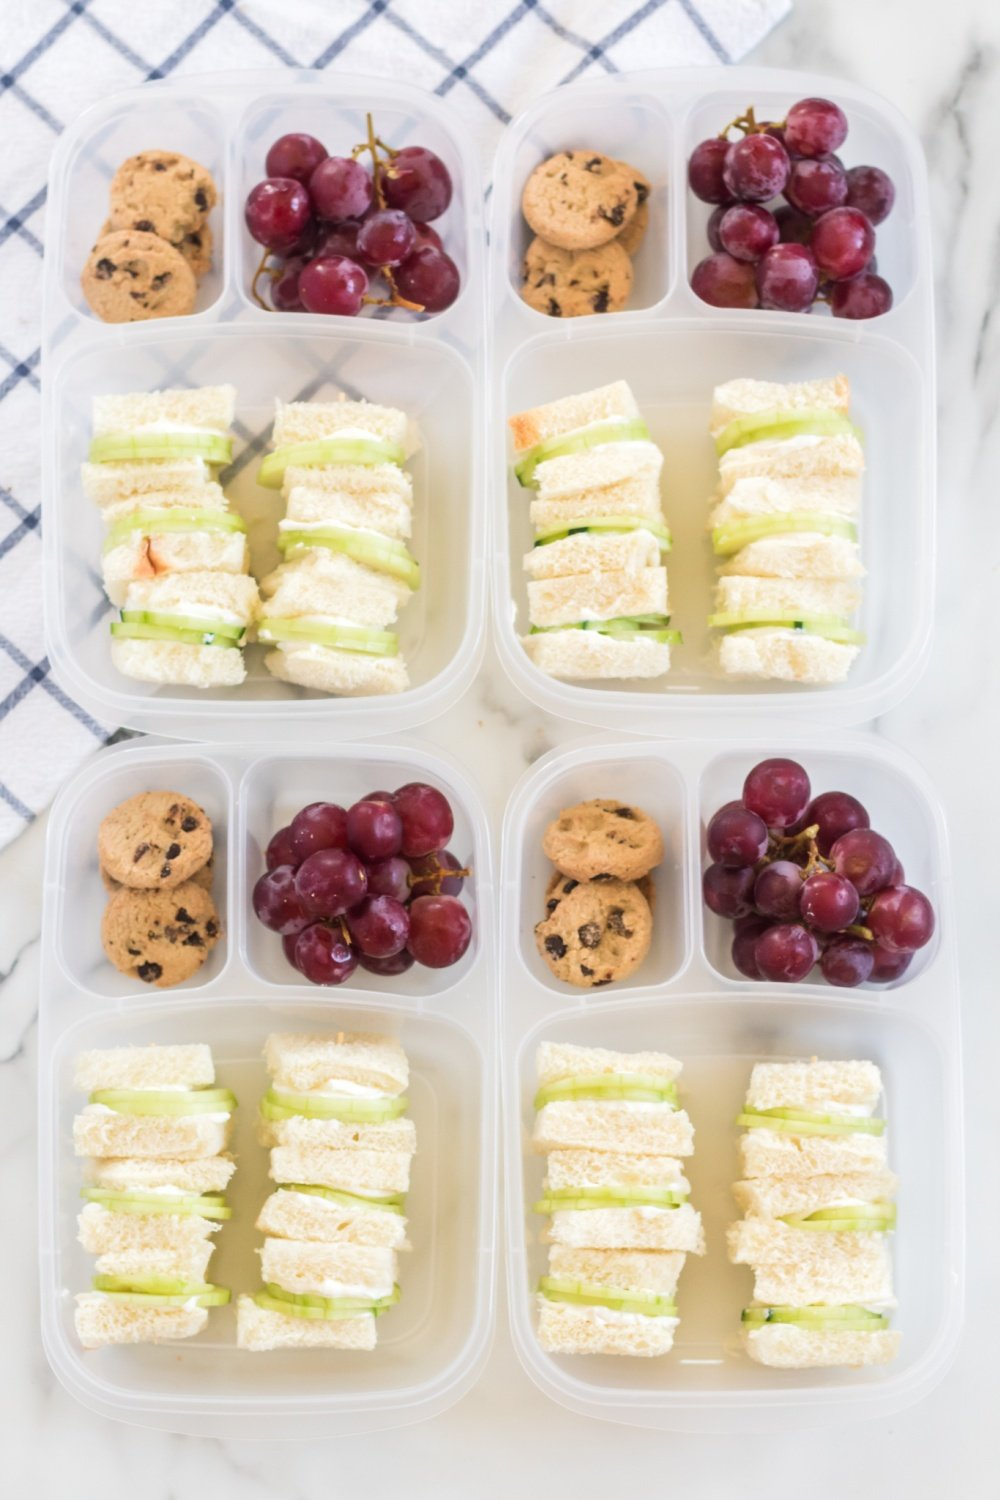 This mini cucumber sandwich lunchbox idea is a fun way to bring a little bright, elegant fun to your work or school lunch. via @familyfresh